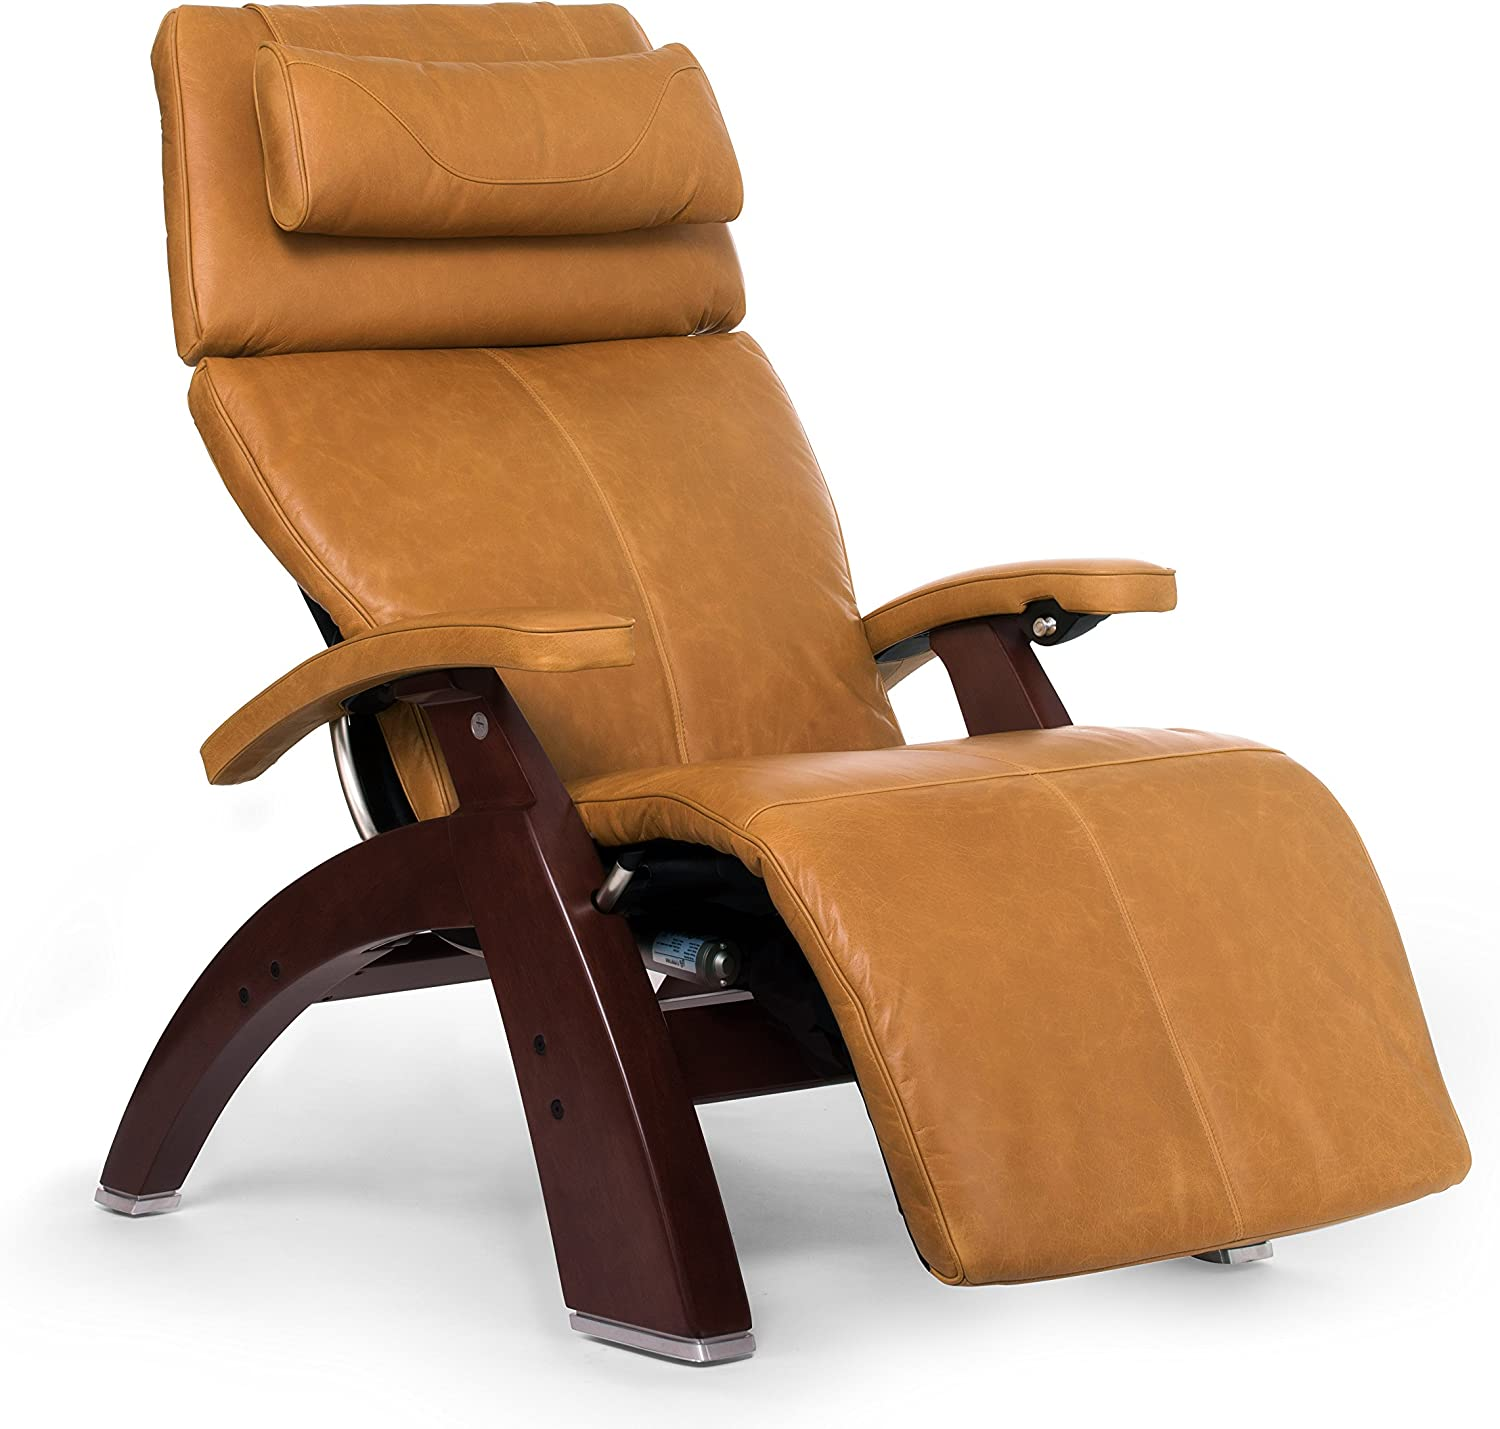 Perfect-Chair-PC-610-Omni-Motion-Classic-Premium-Full-Grain-Leather-Zero-Gravity-Recliner,-Sycamore